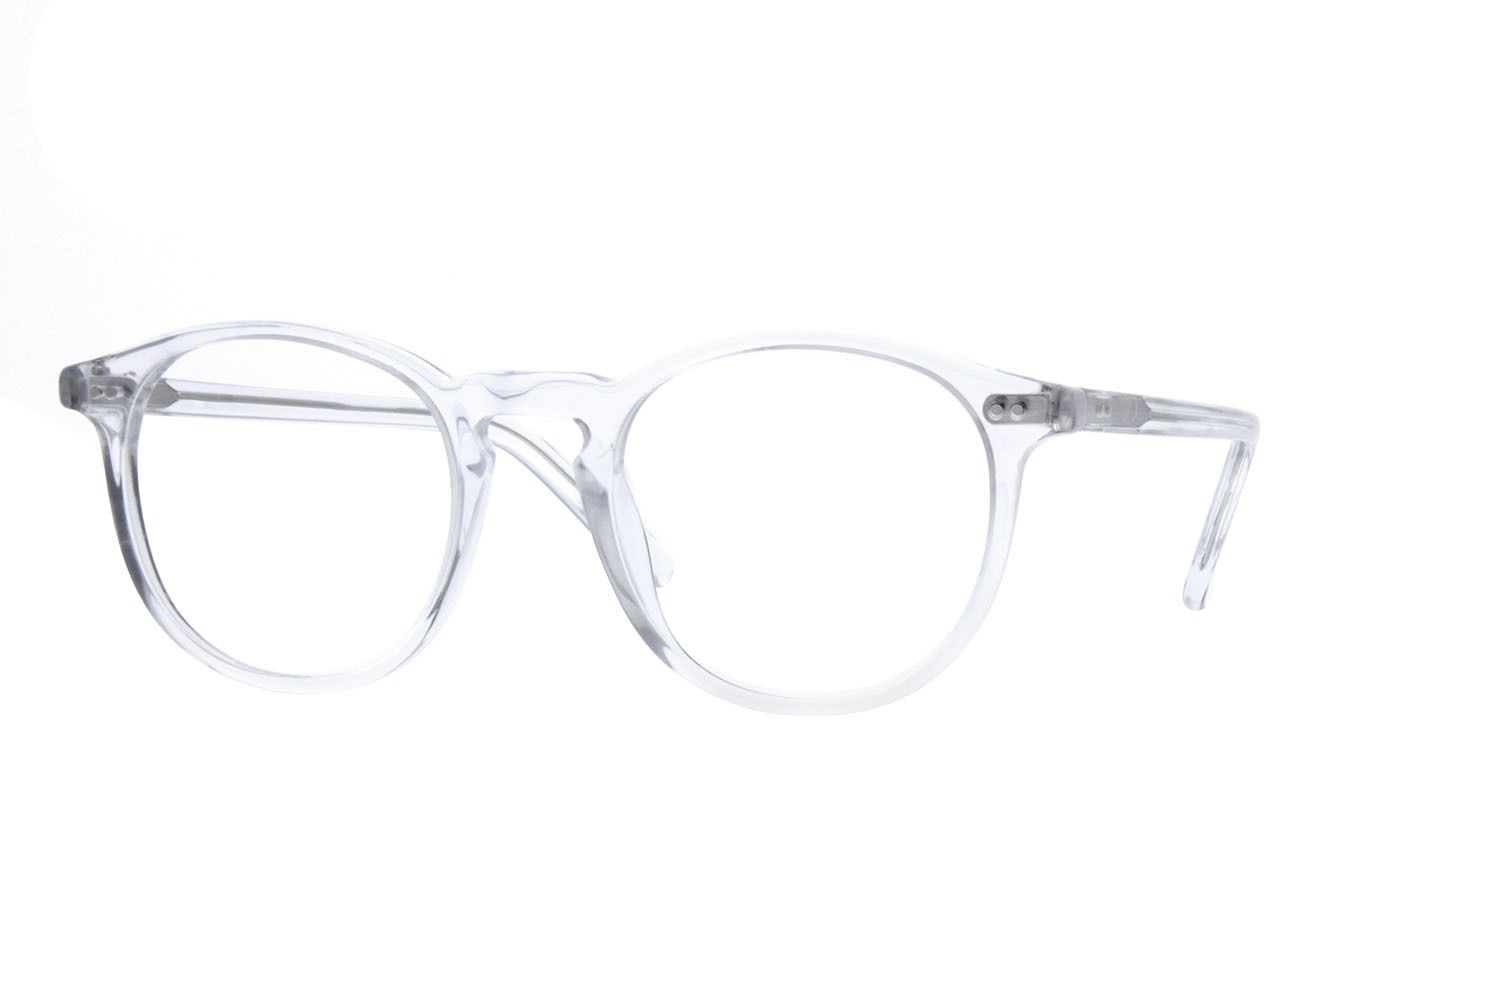 33cdc32960 Zenni Round Prescription Eyeglasses Clear Plastic 4422423 in 2019 ...